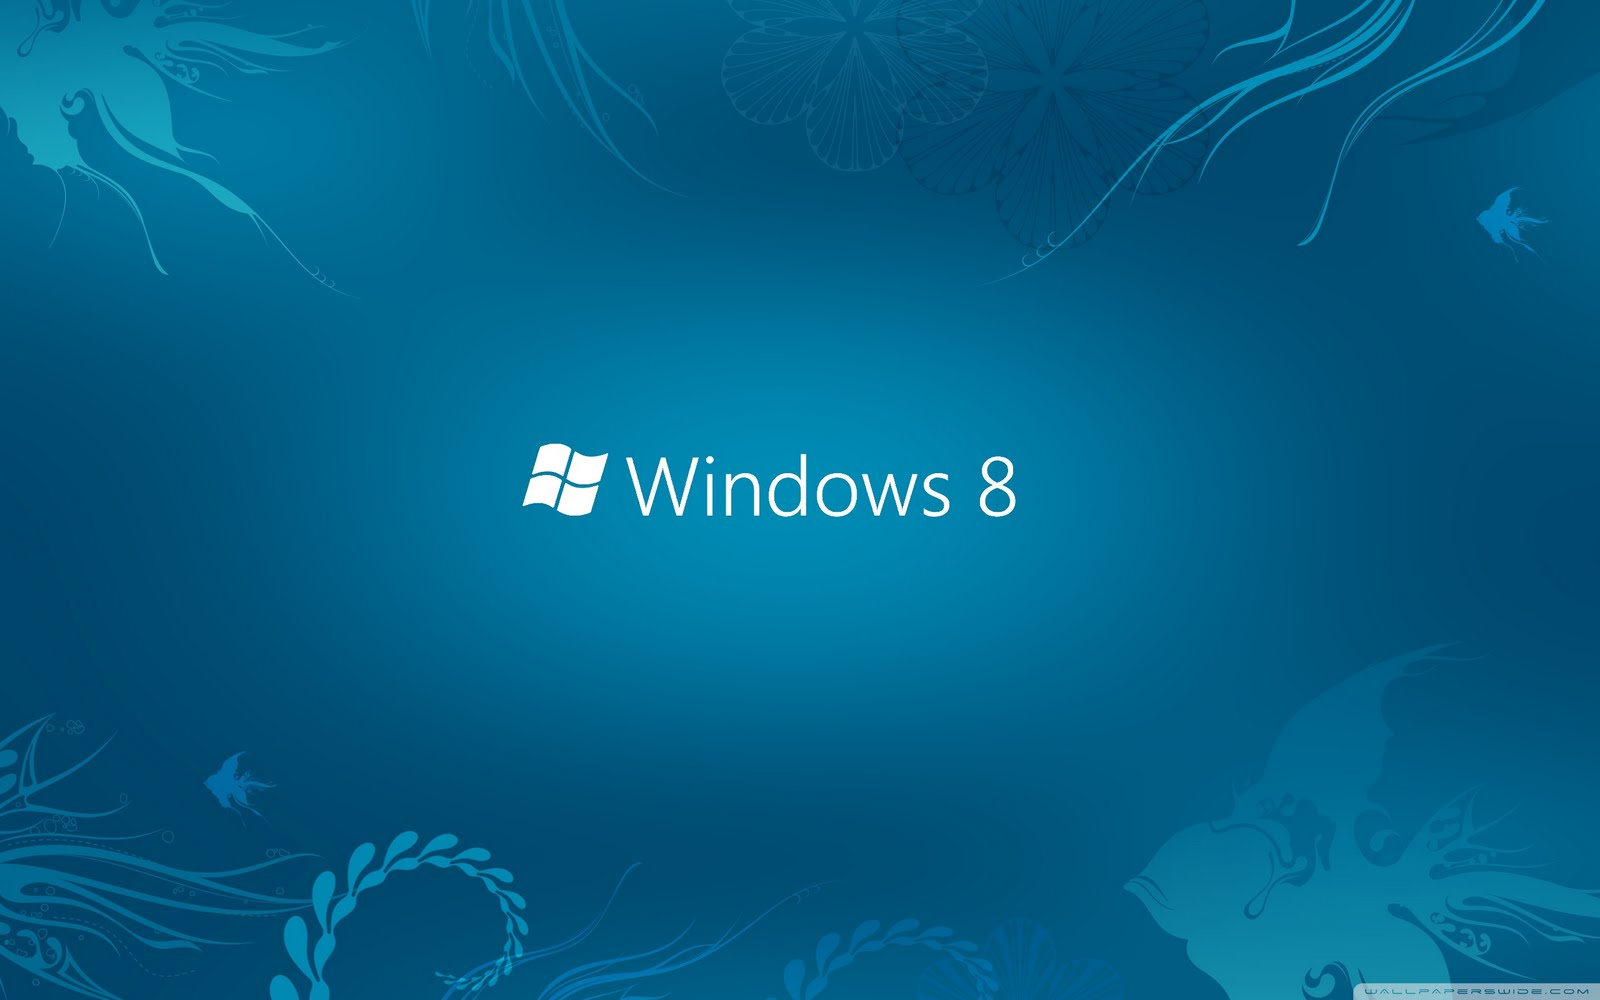 Top 12 Cool Windows 8 HD wallpapers for desktop backgrounds 81 600x375 1600x1000